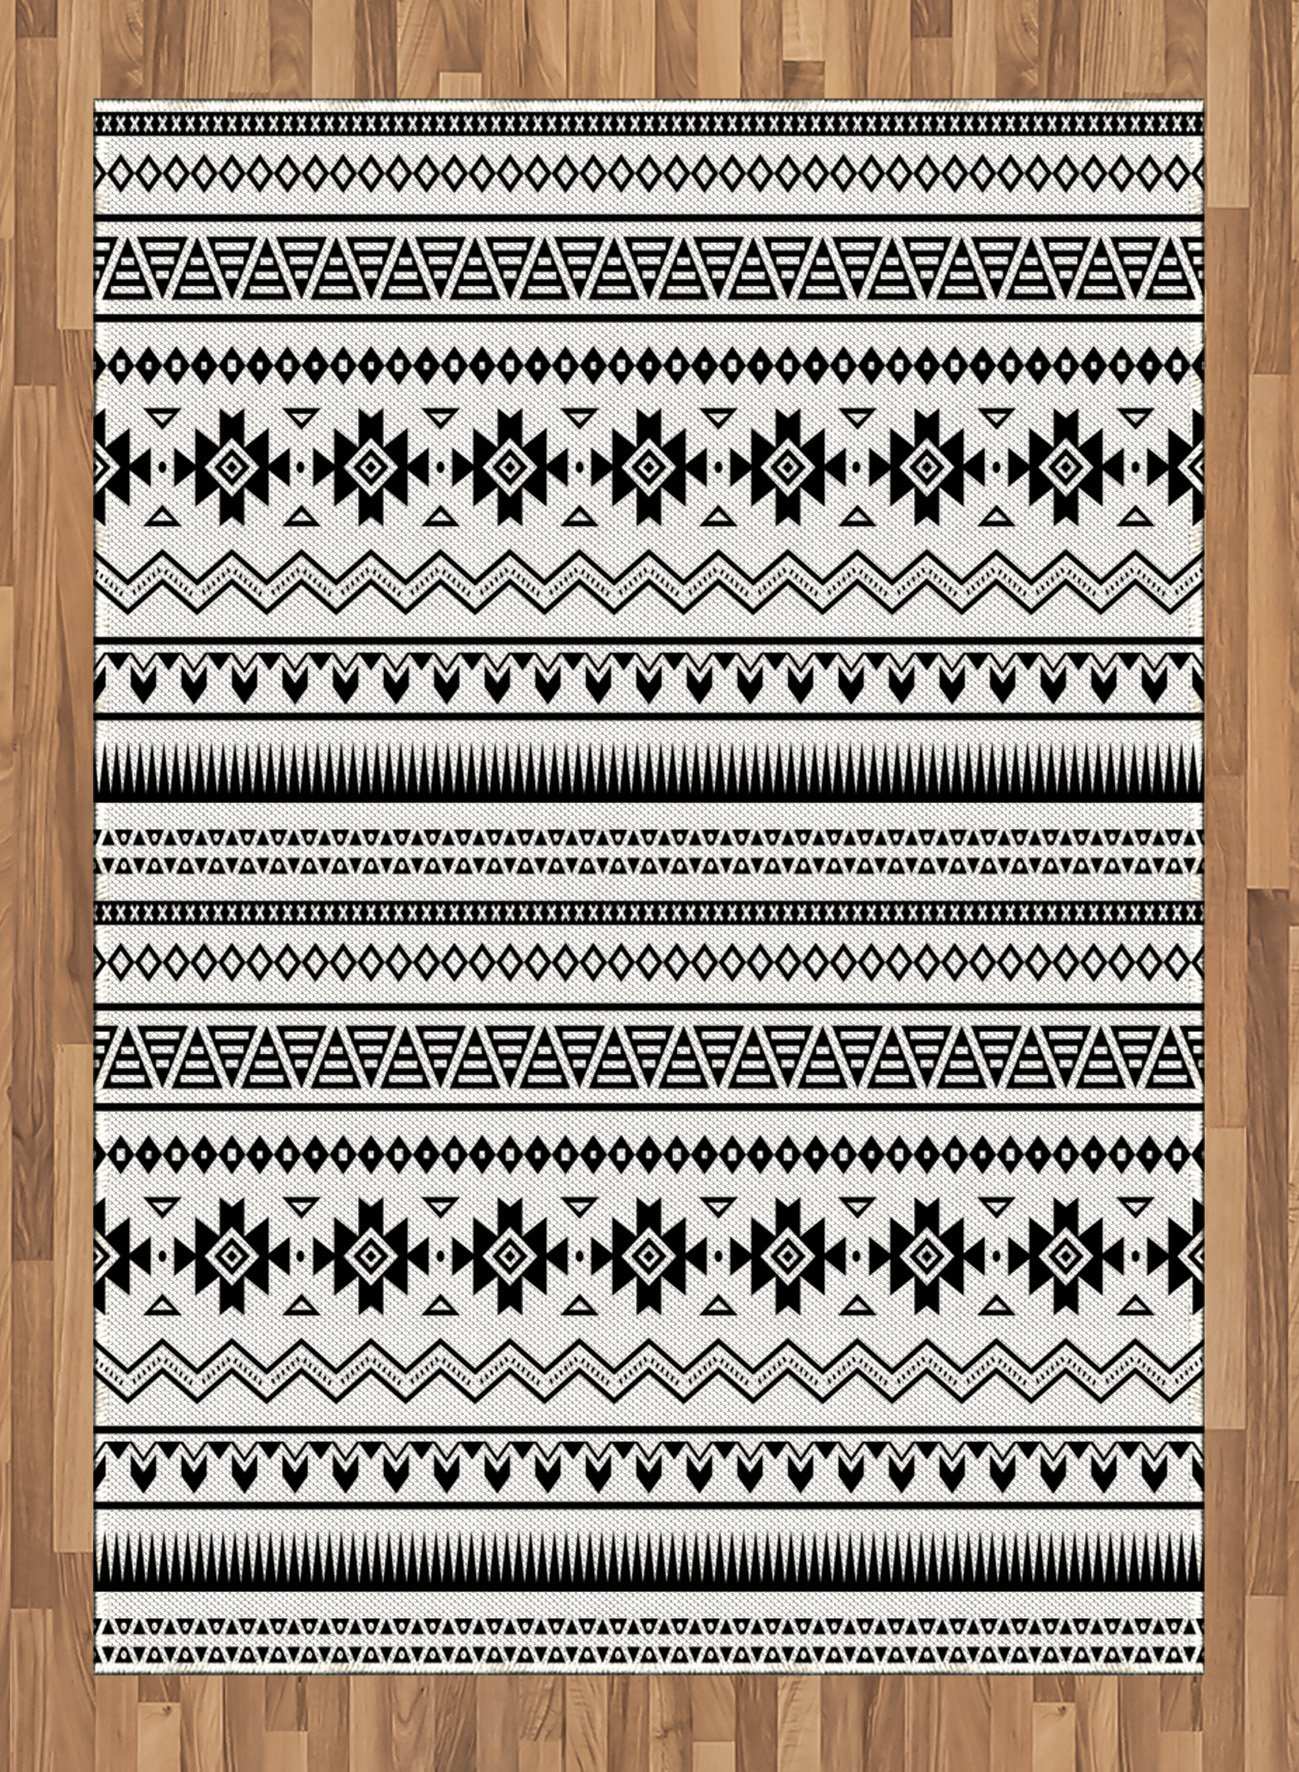 Native American Area Rug by Ambesonne, Aztec American Folkloric Art Borders Ancient Tribal South America Culture, Flat Woven Accent Rug for Living Room Bedroom Dining Room, 5.2 x 7.5 FT, Black White by Ambesonne